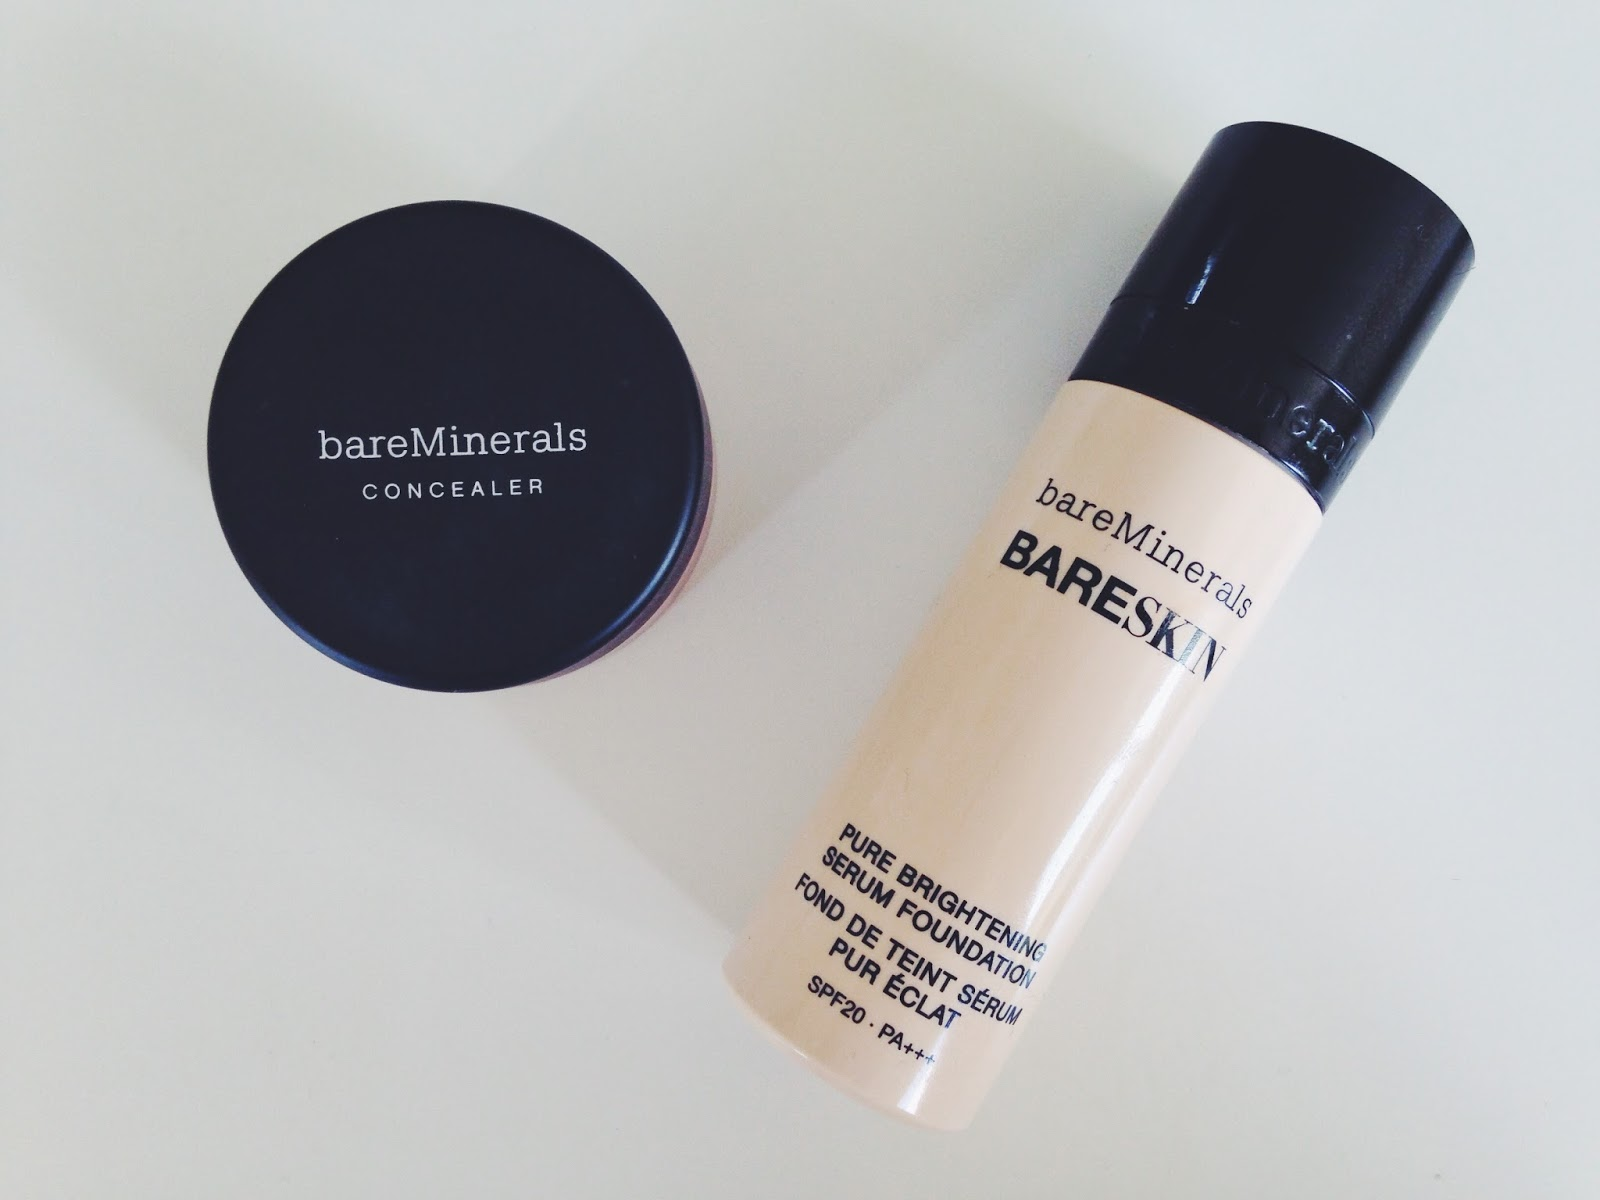 Are Bare Minerals Products Natural? - Curiously Conscious